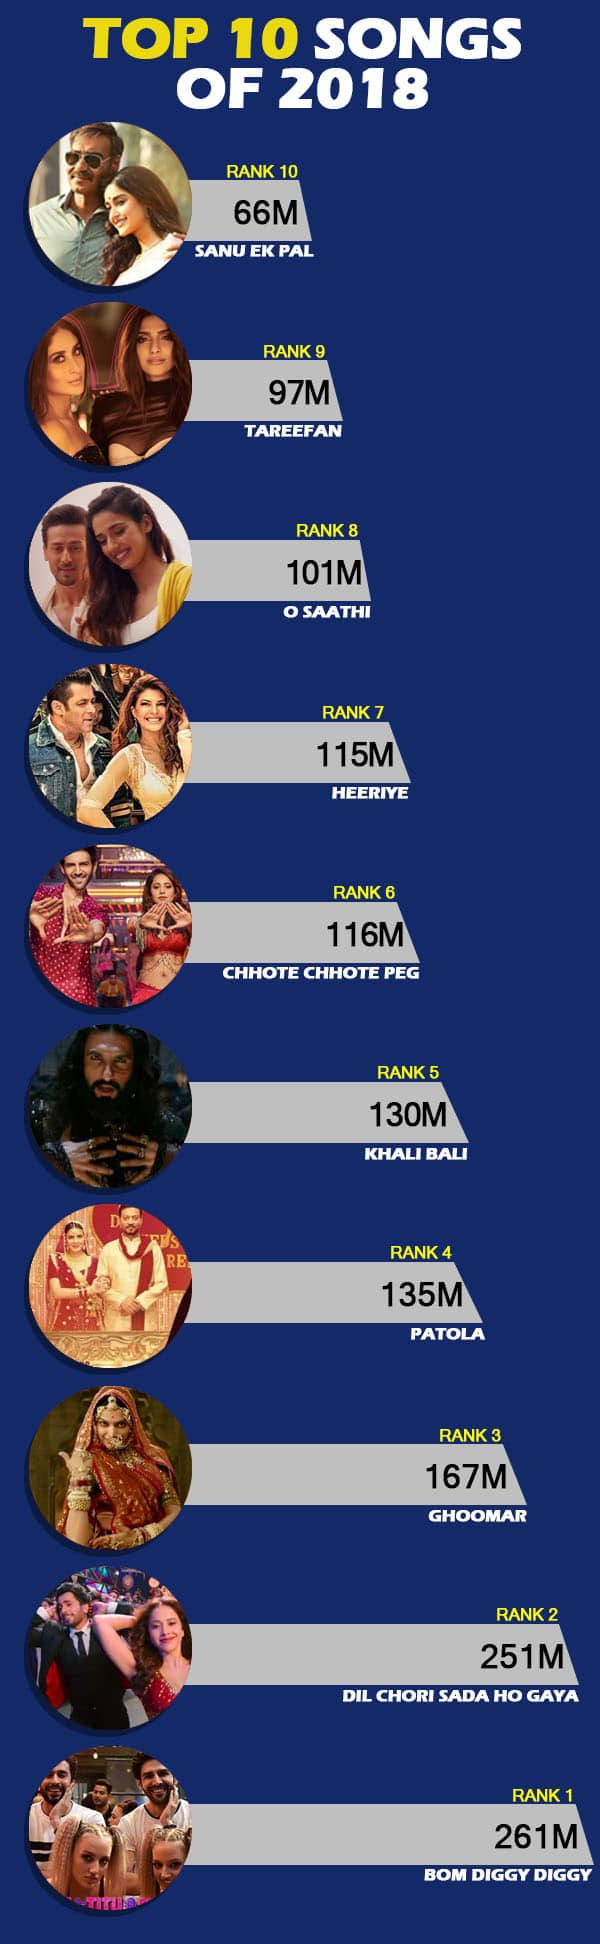 Top 10 Bollywood Songs From The First Half Of 2018 That Got Maximum Views On Youtube